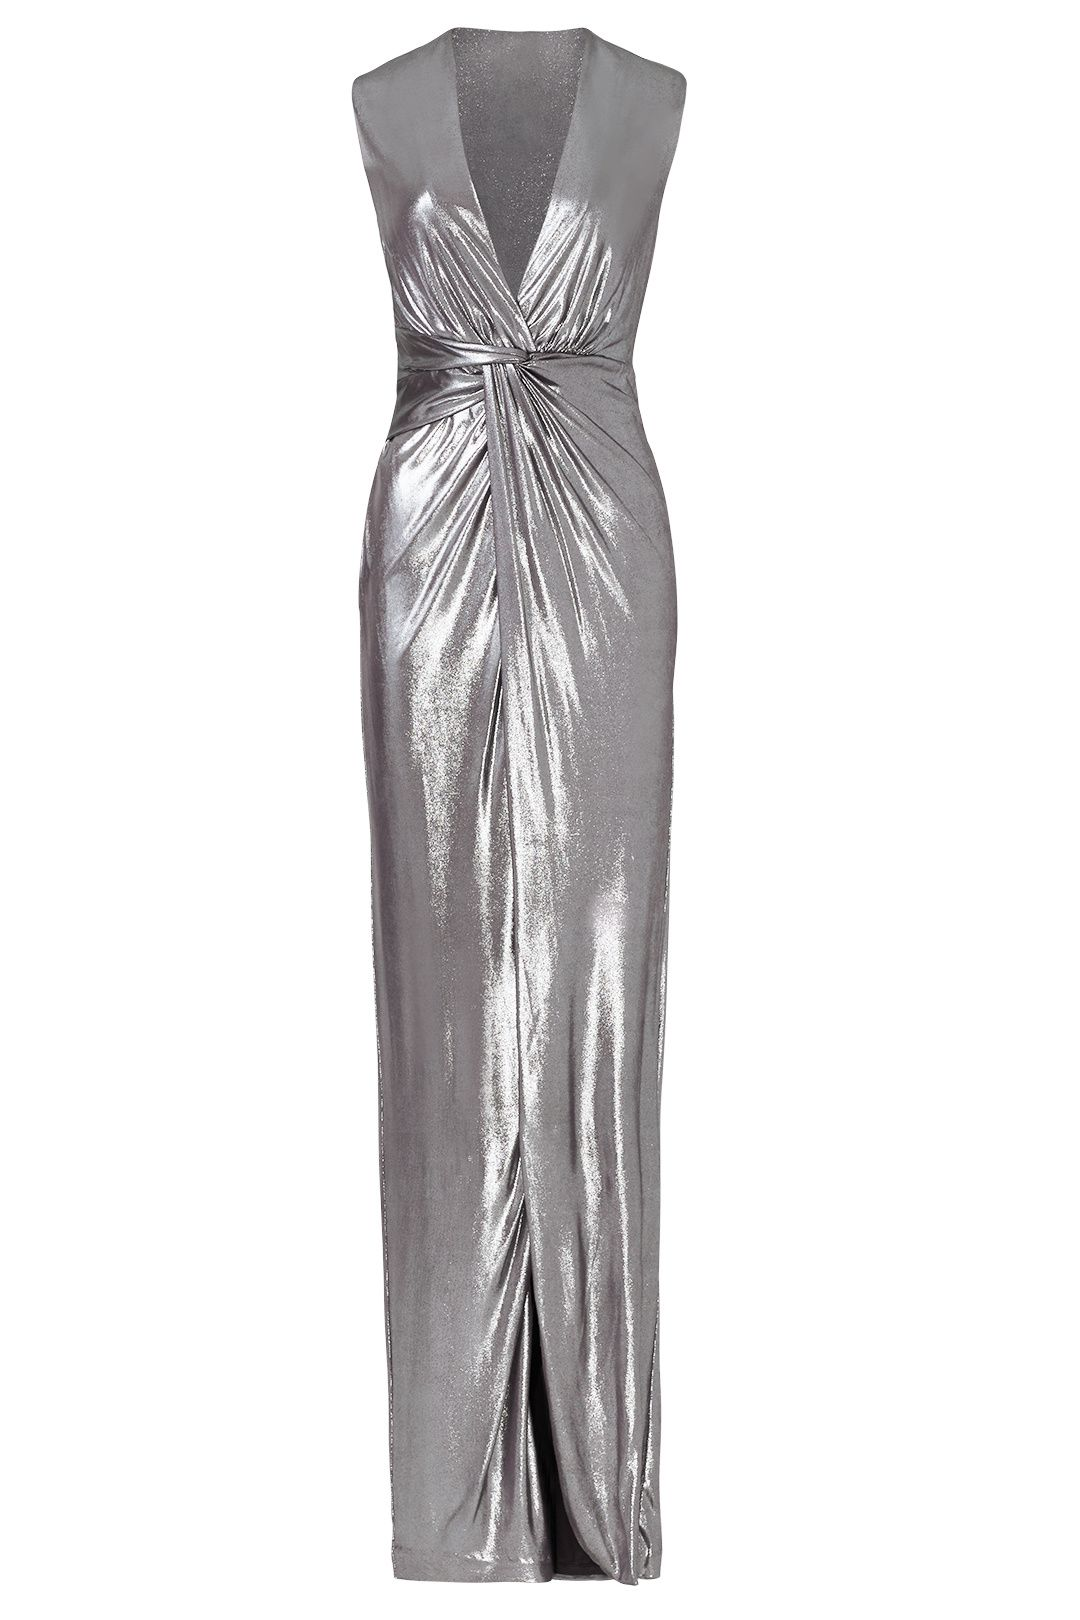 Silver Twist Column Gown | Halston heritage, Columns and Gowns